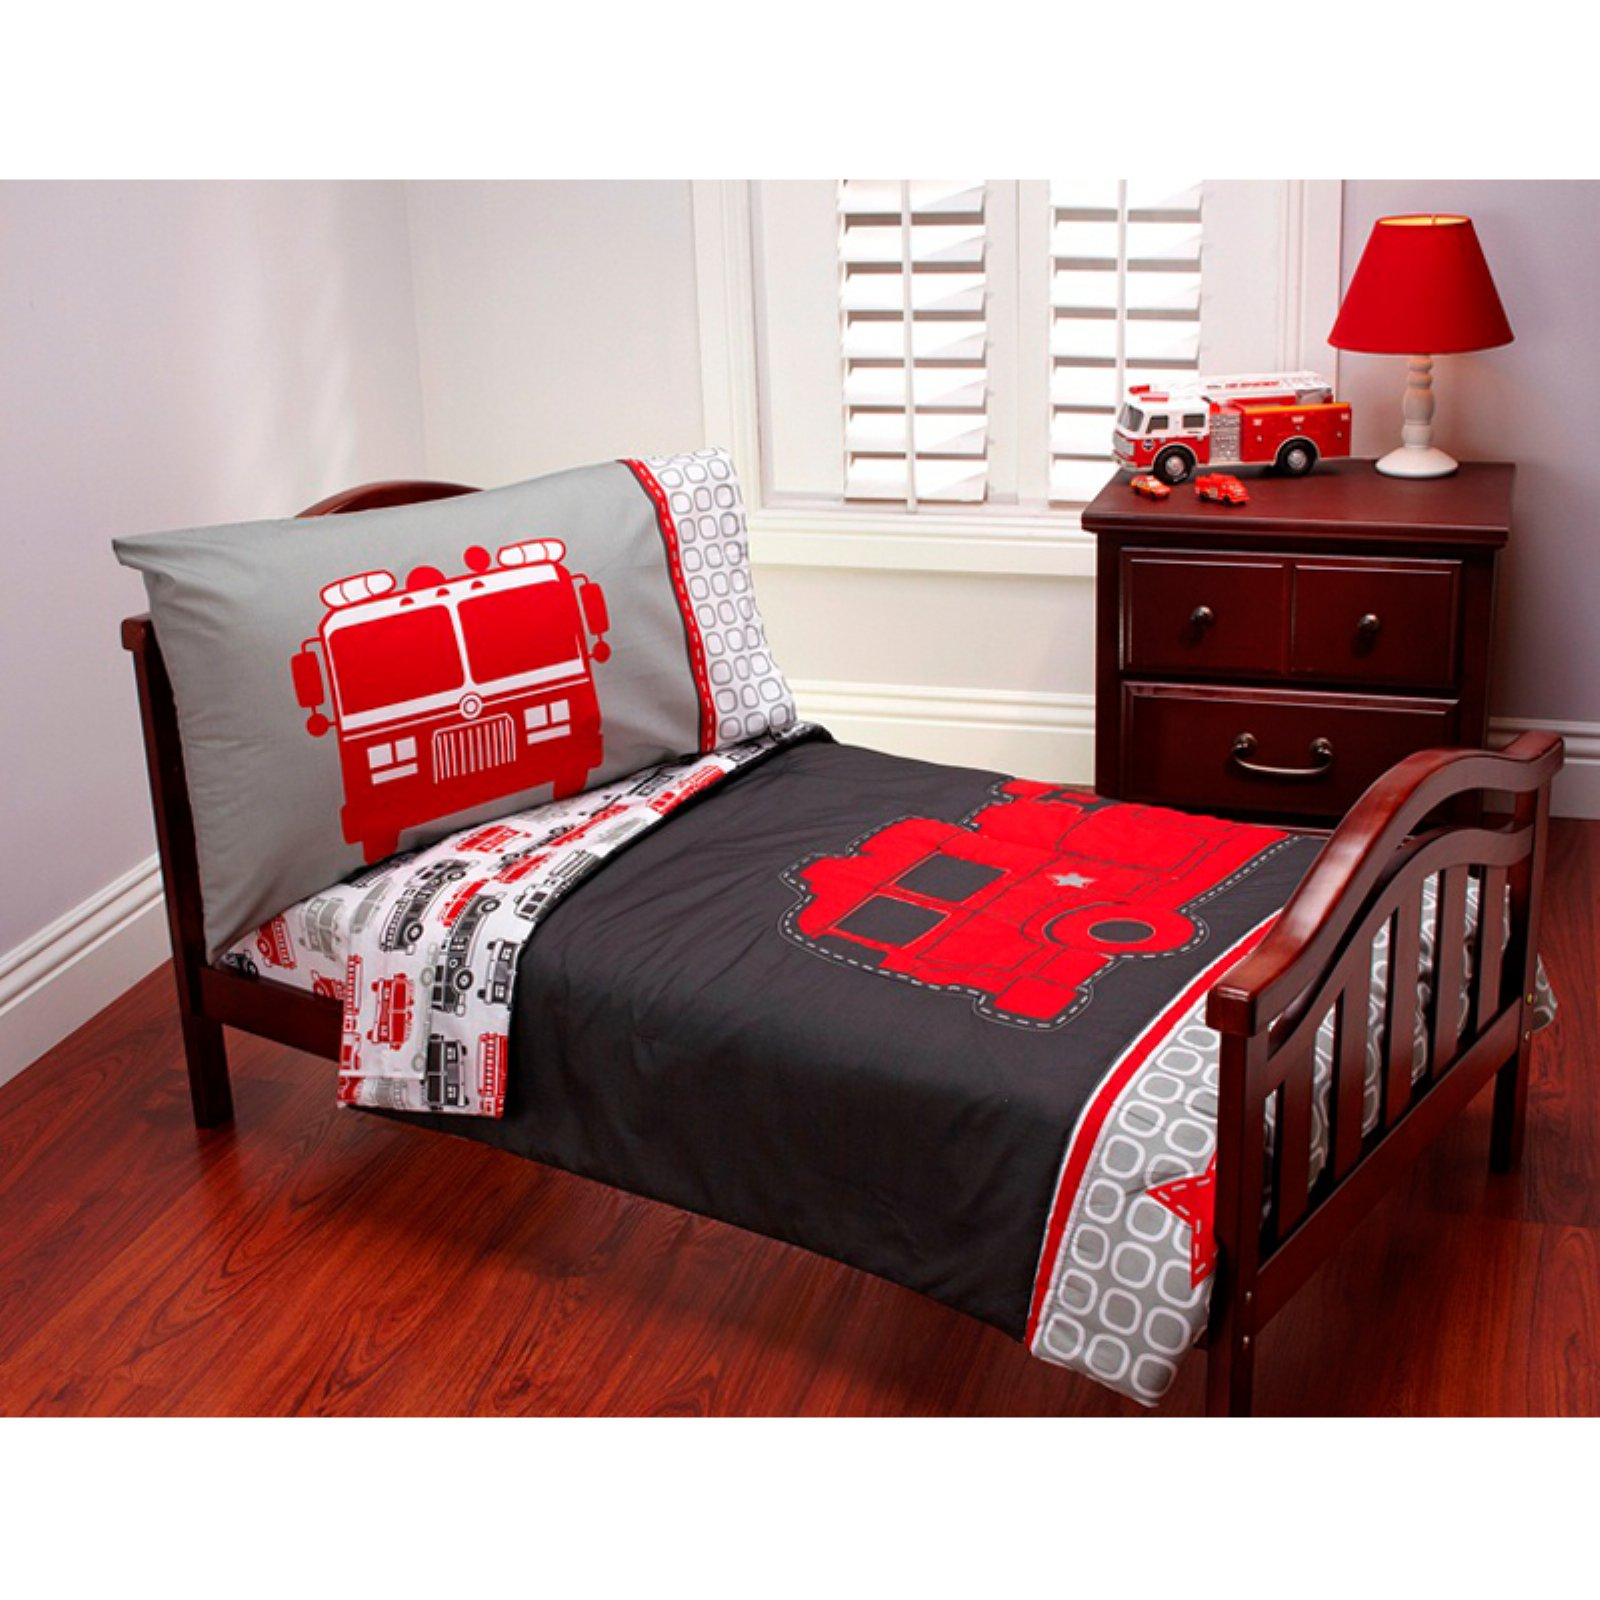 Carter's Fire Truck 4 pc Toddler Bedding Set